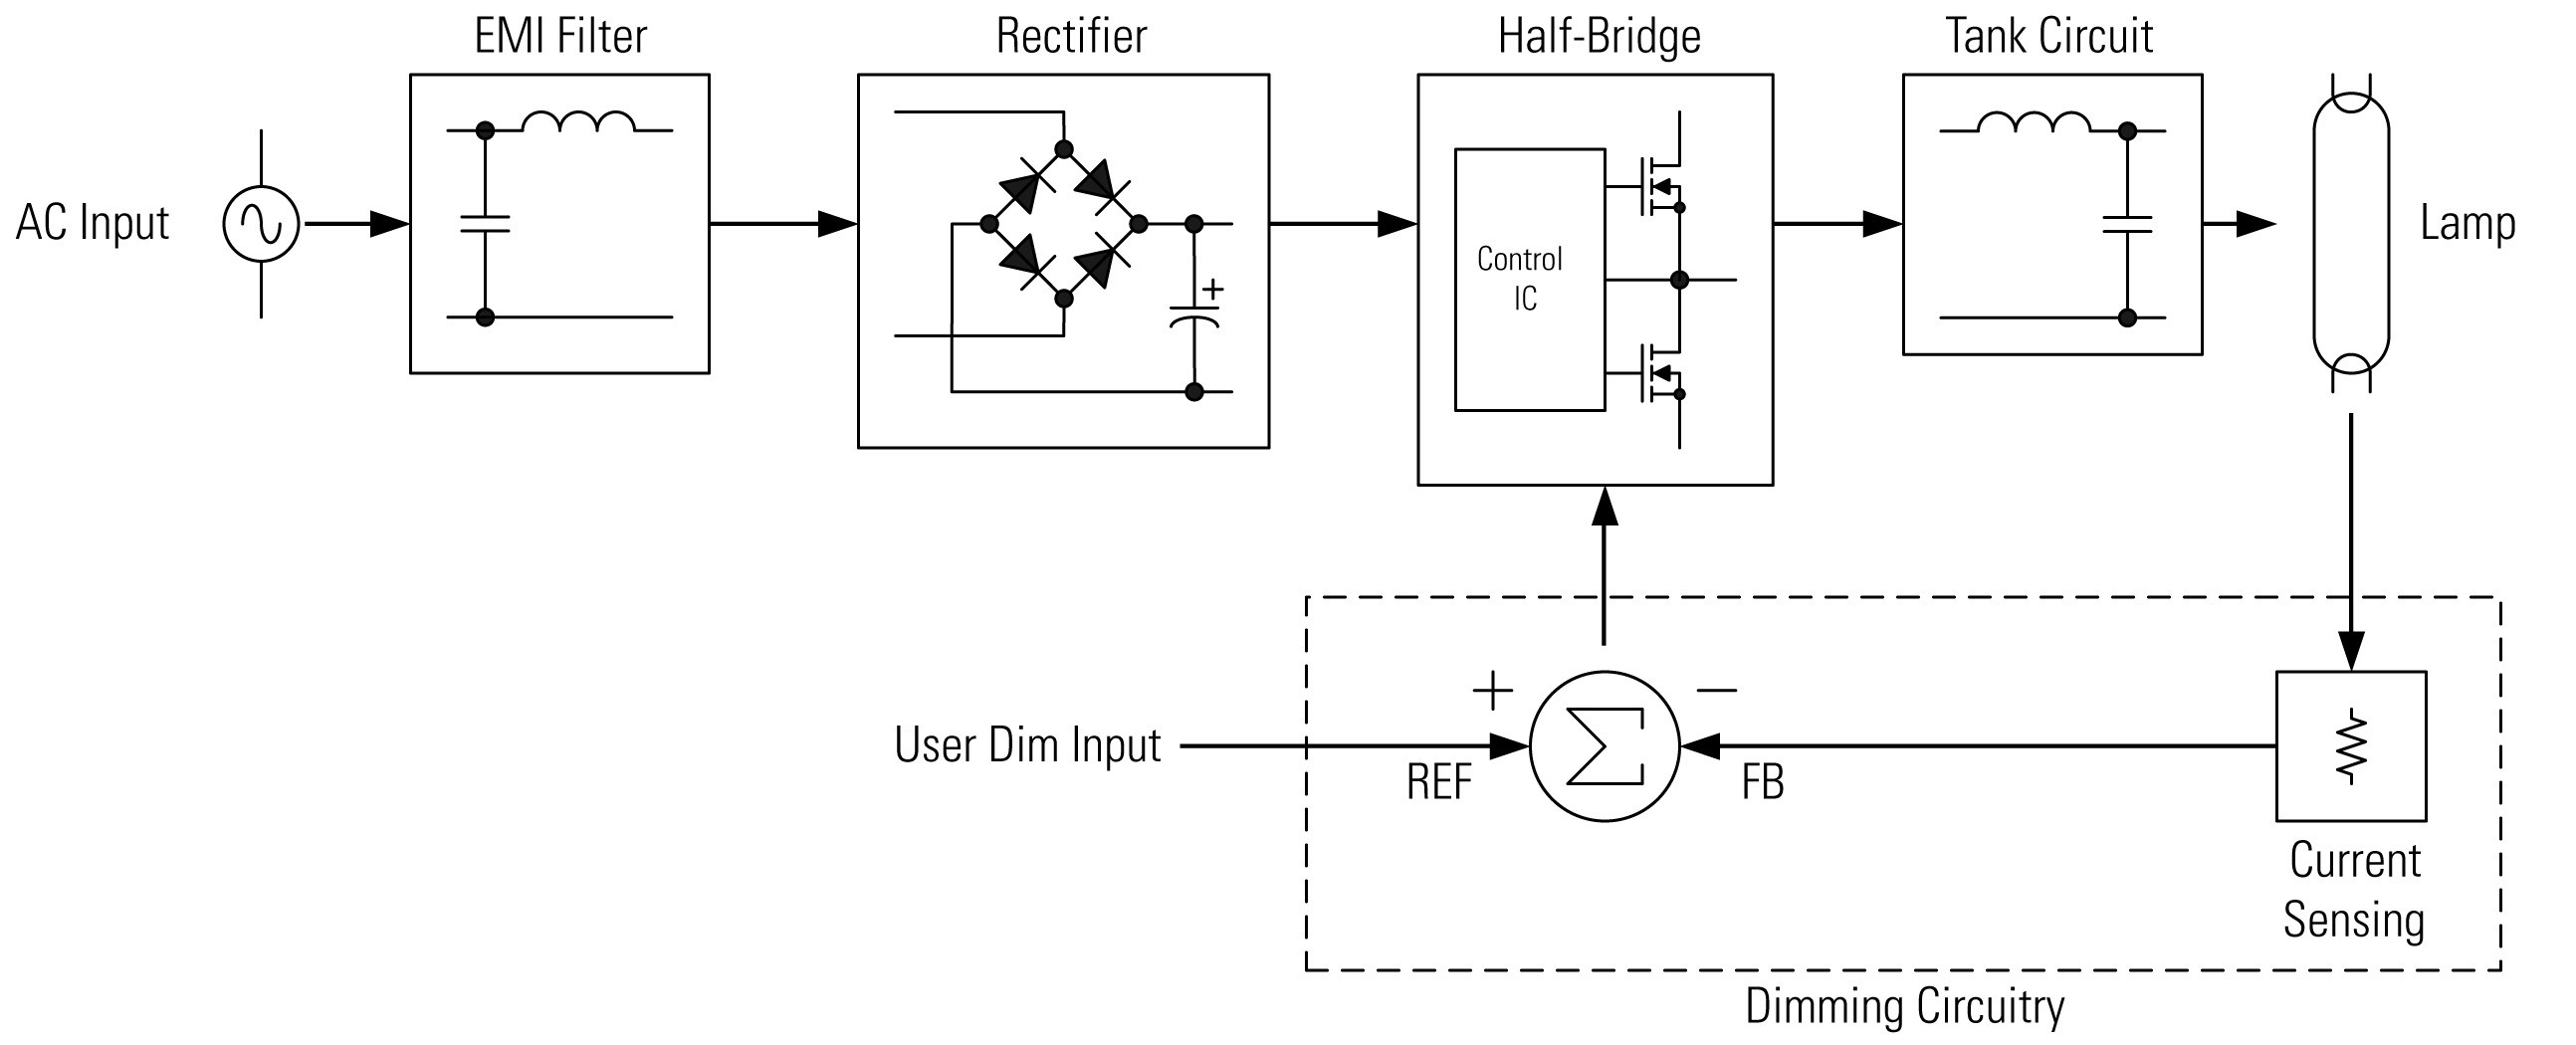 How pact Fluorescent Lamps Work And To Dim Them Ee Times digital multimeter circuit